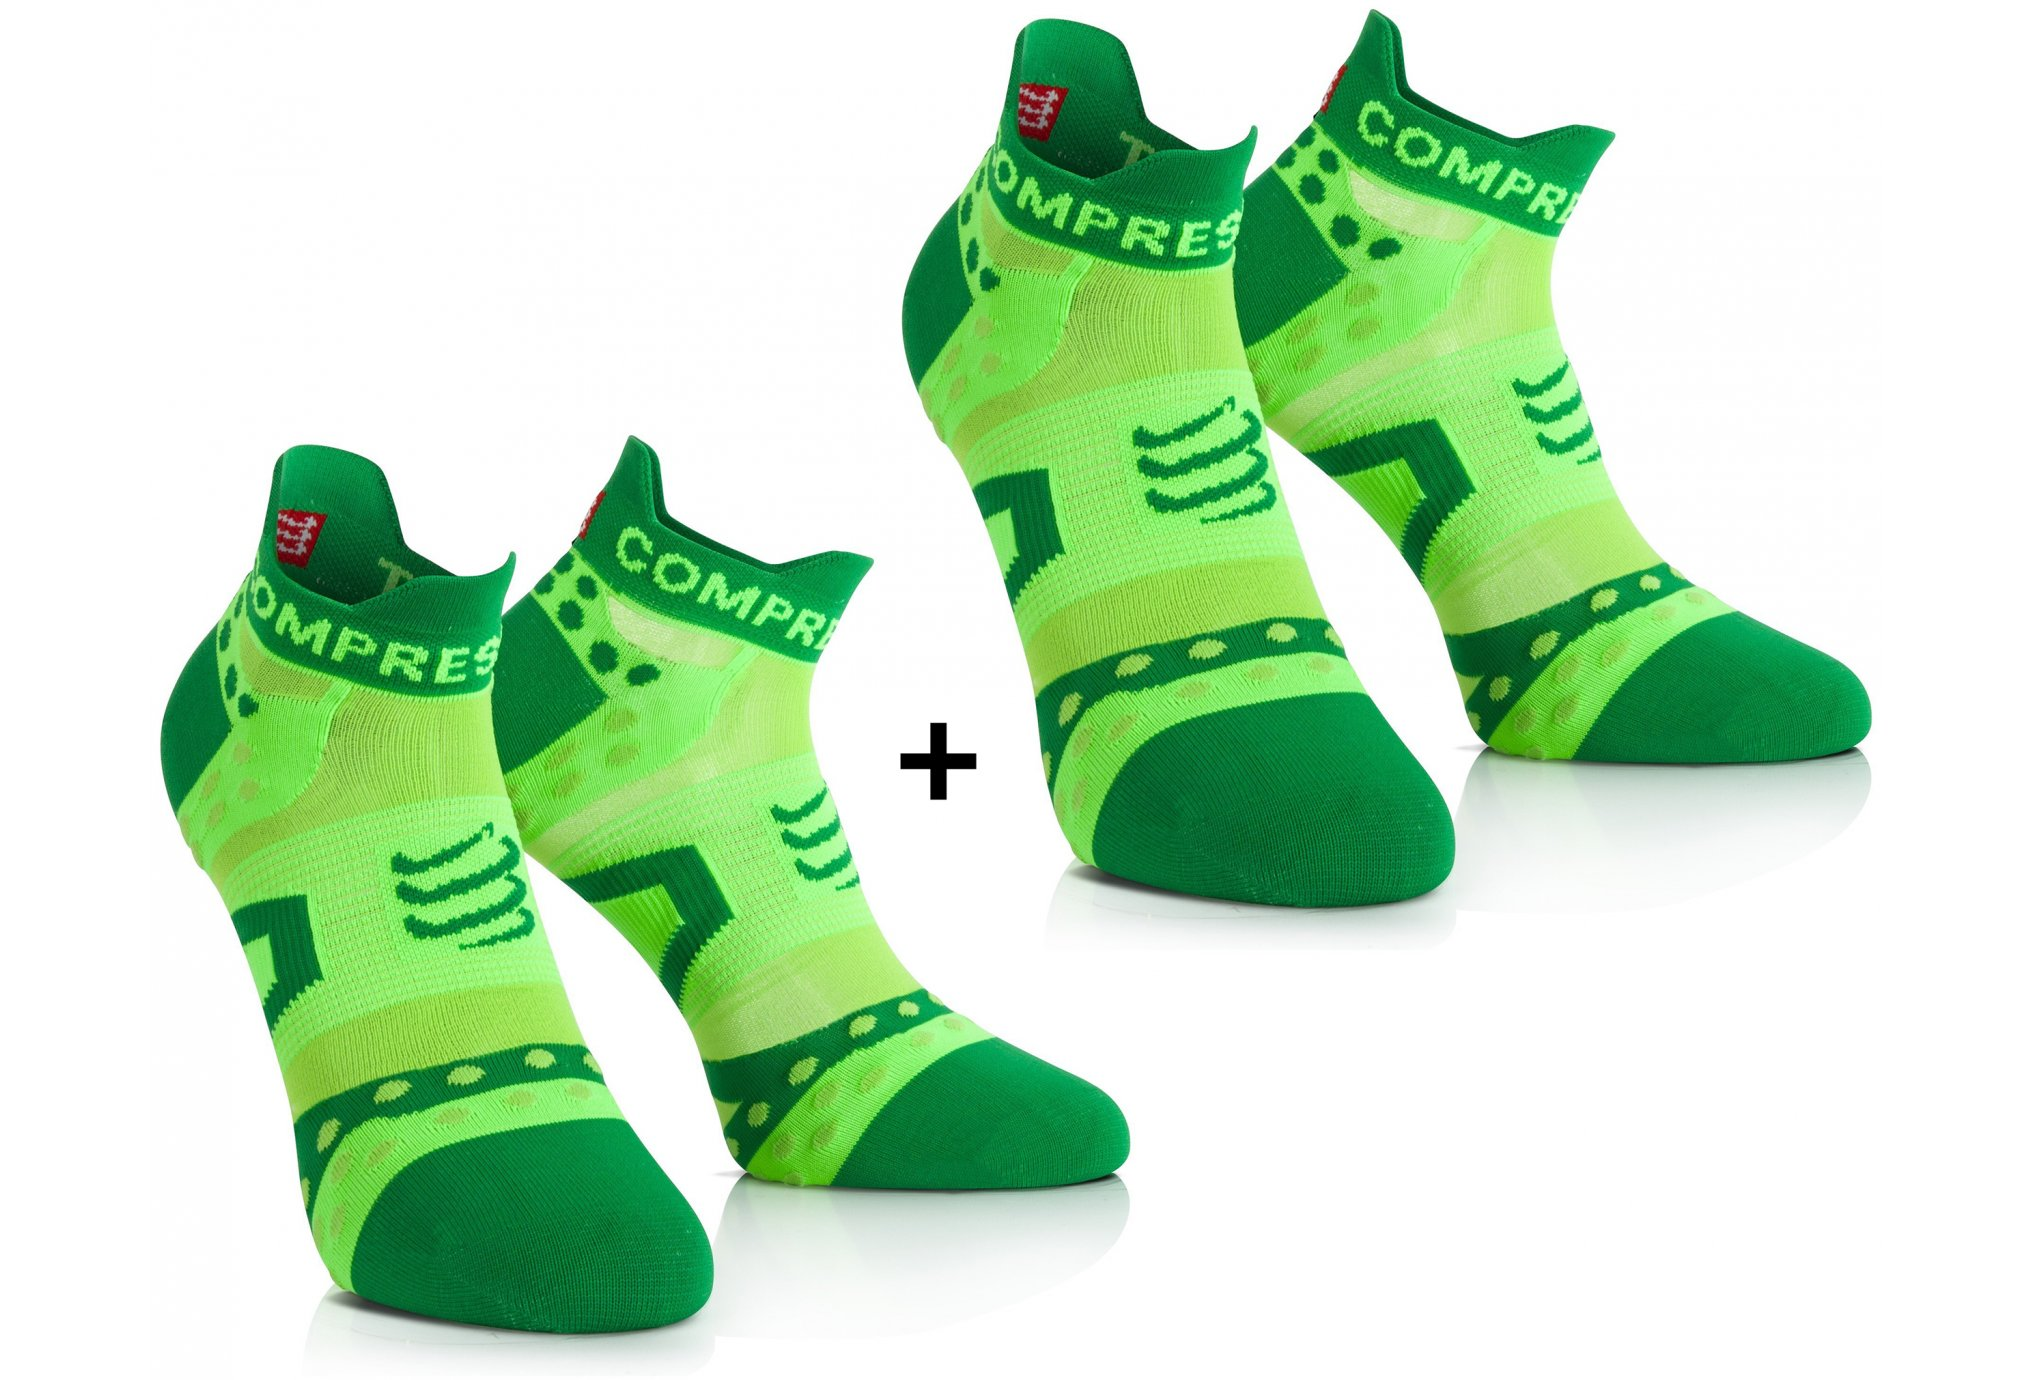 Compressport Pack Pro Racing Ultra Light Run Low Chaussettes